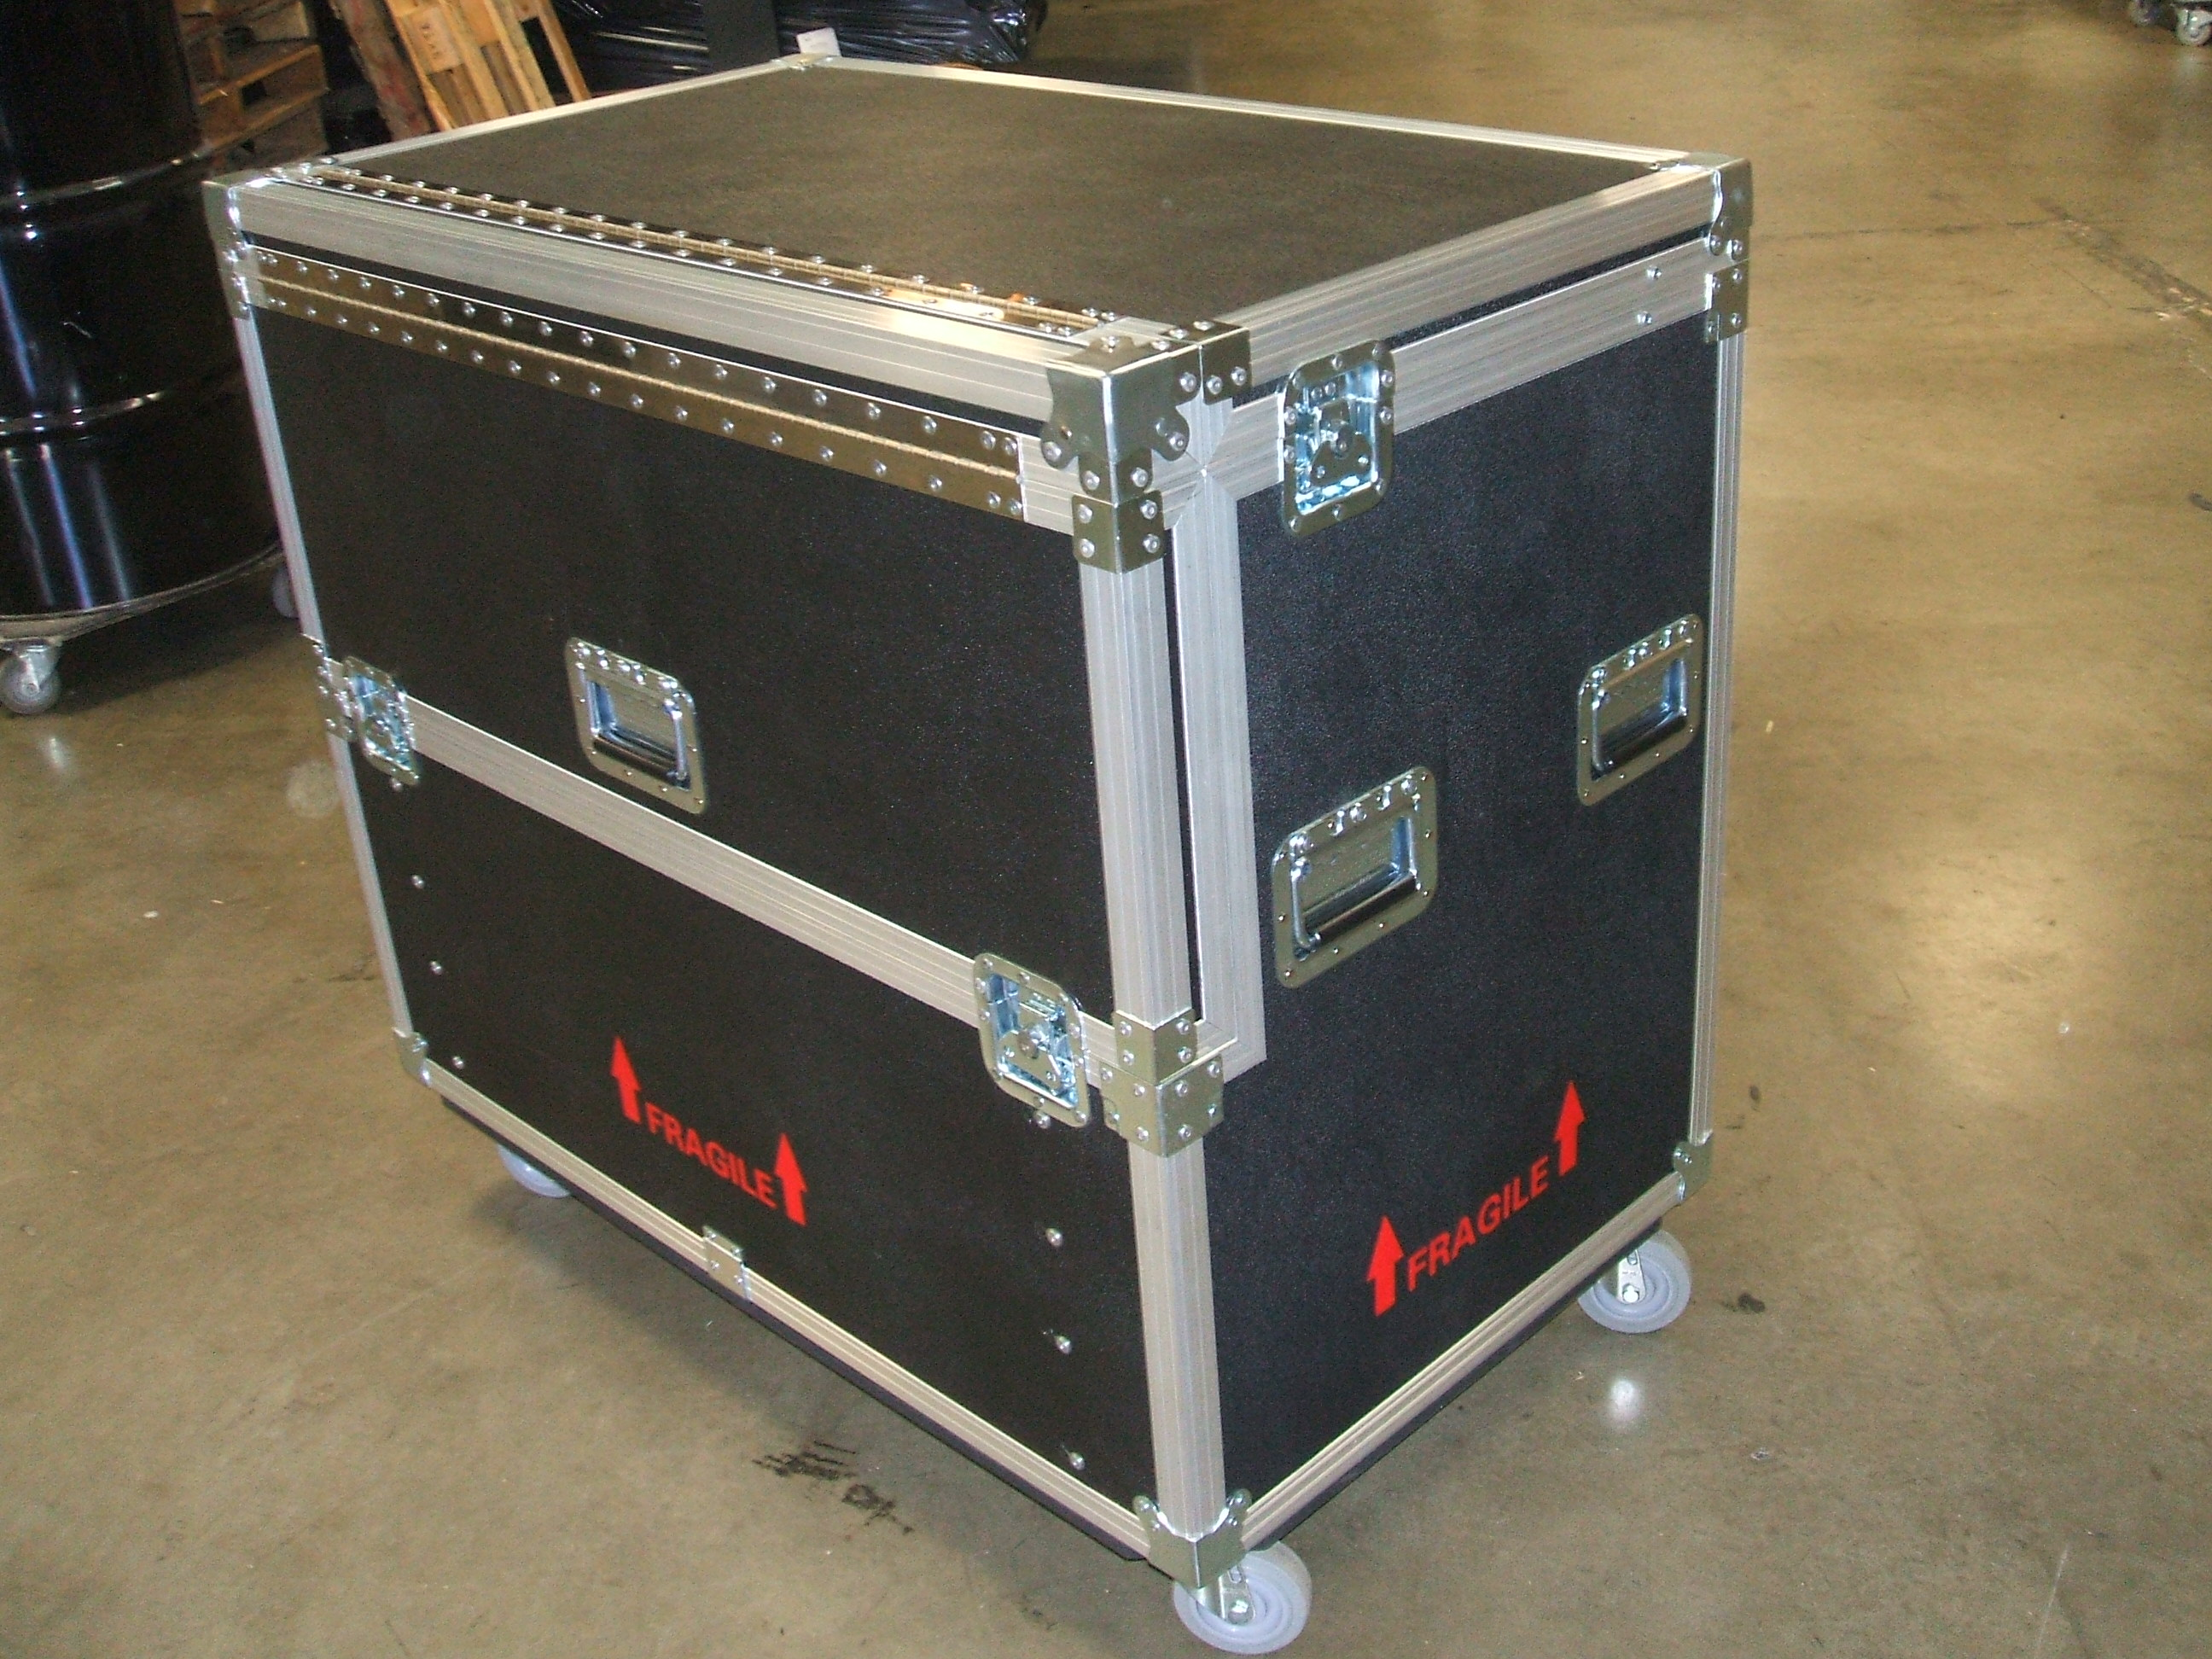 Print # 5887 - Custom Case for (1) 3ality TS-35 Camera Rig  By Nelson Case Corp